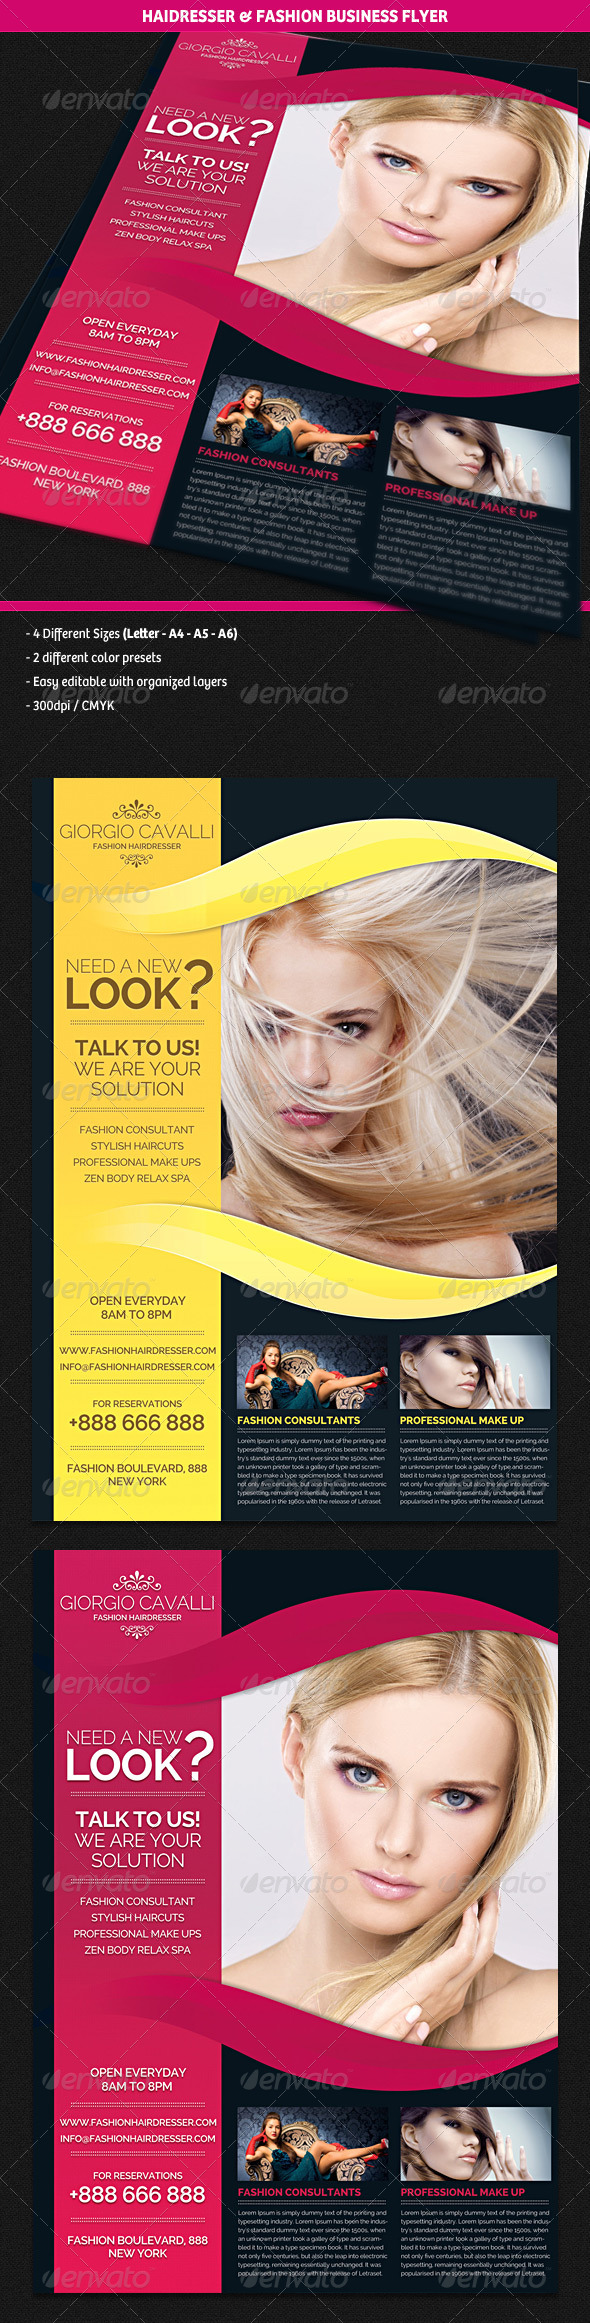 Hair Dresser Salon Fashion Business Flyer Graphicriver